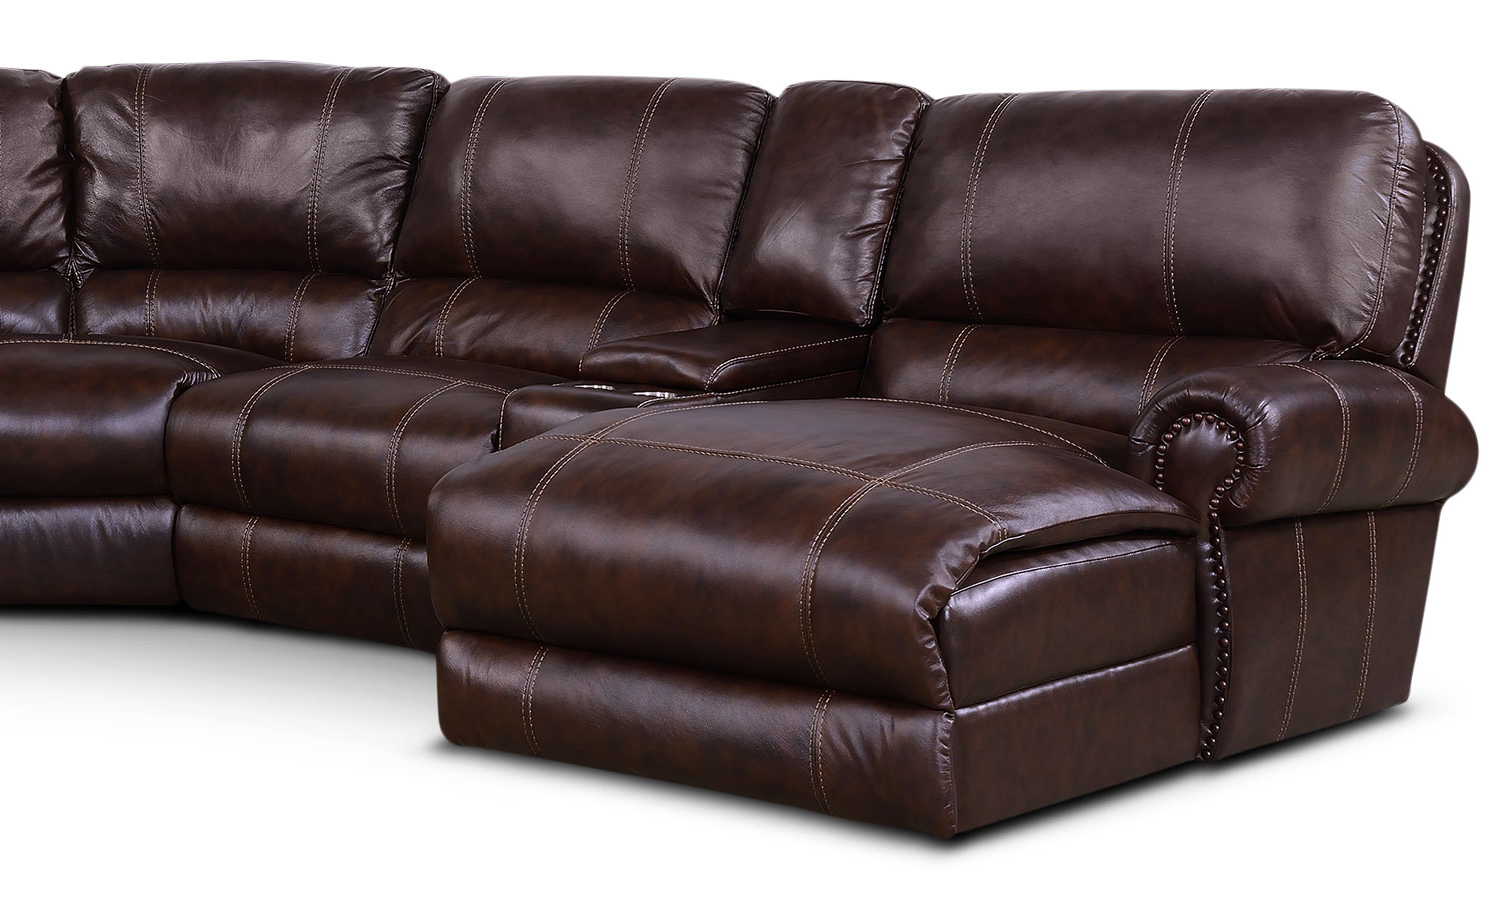 Dartmouth 6 Piece Power Reclining Sectional With 2 Reclining Seats Within 2018 Norfolk Chocolate 6 Piece Sectionals (View 7 of 20)